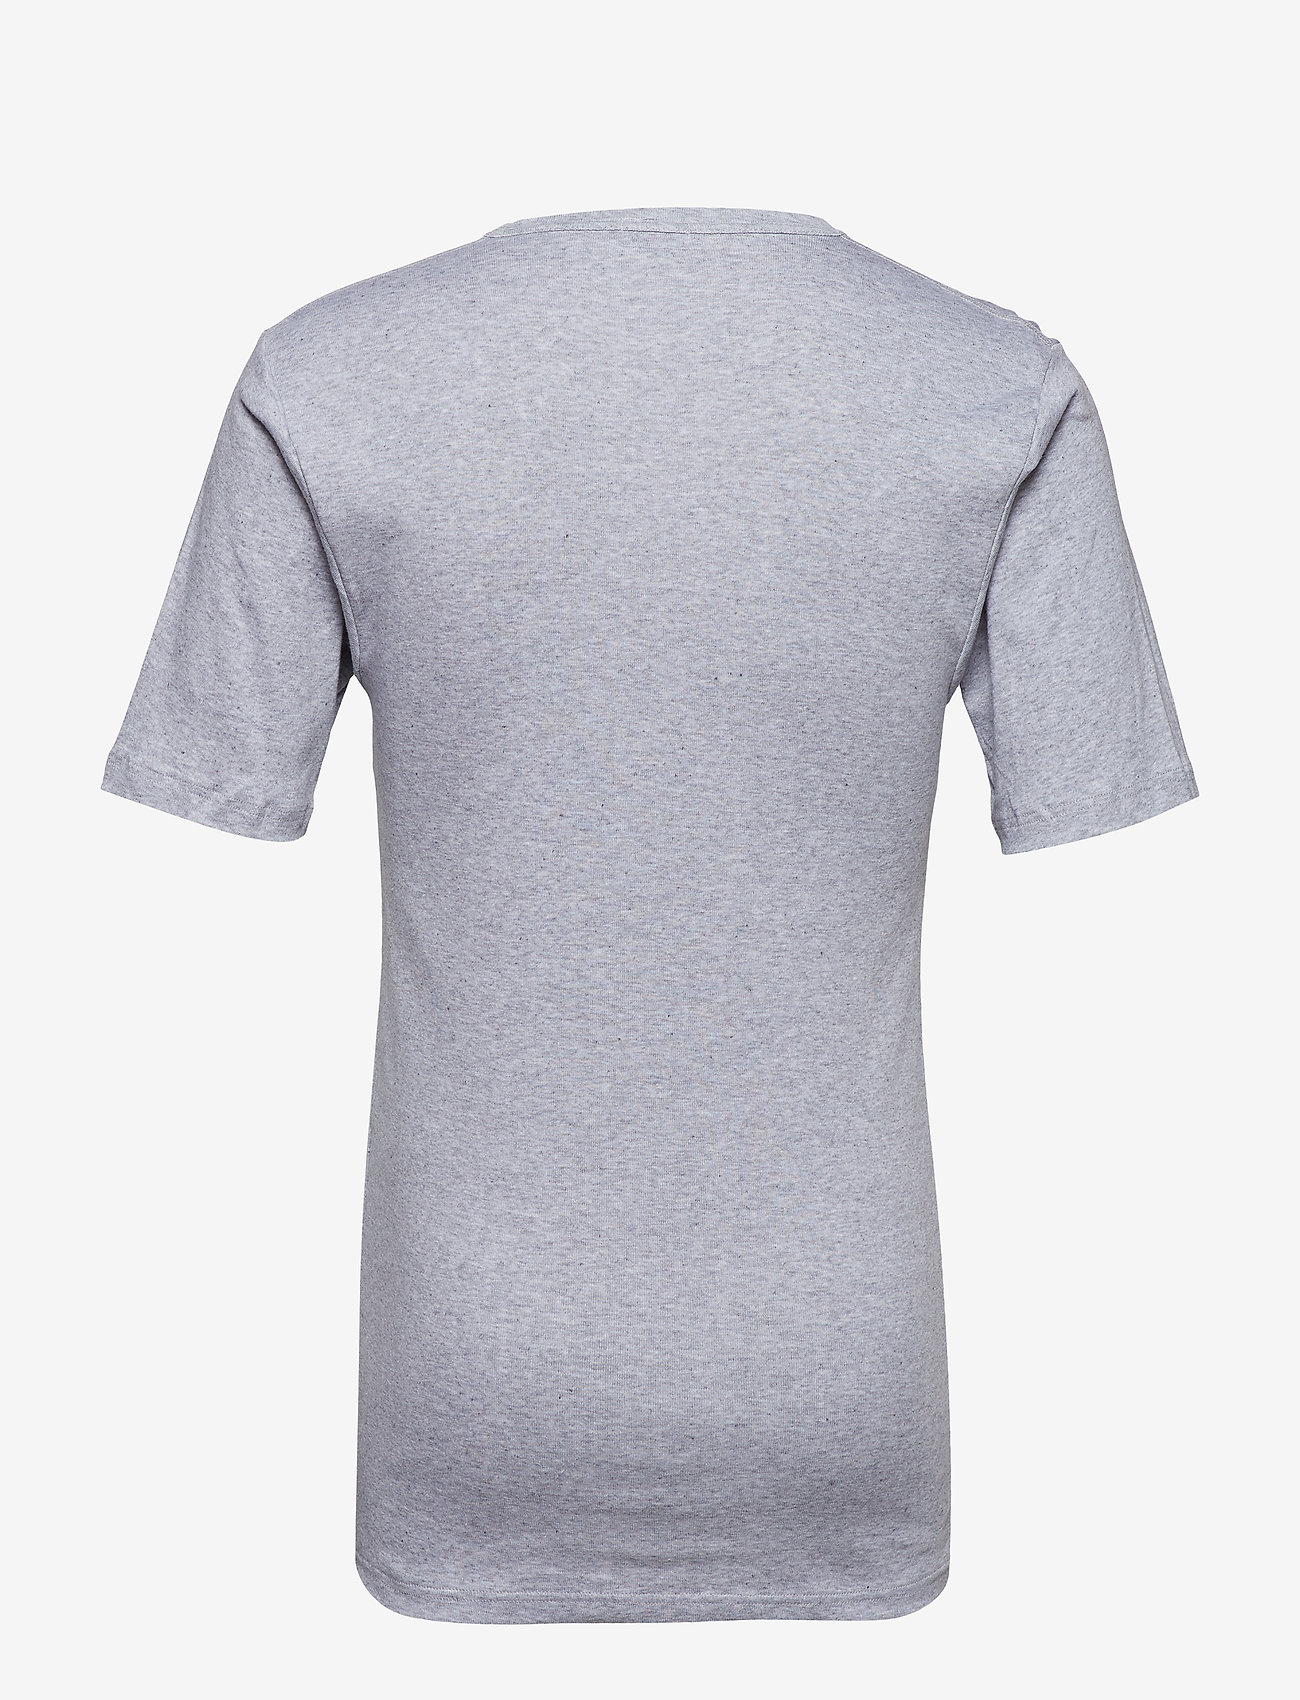 JBS - JBS t-shirt original - basis-t-skjorter - grey mel - 1